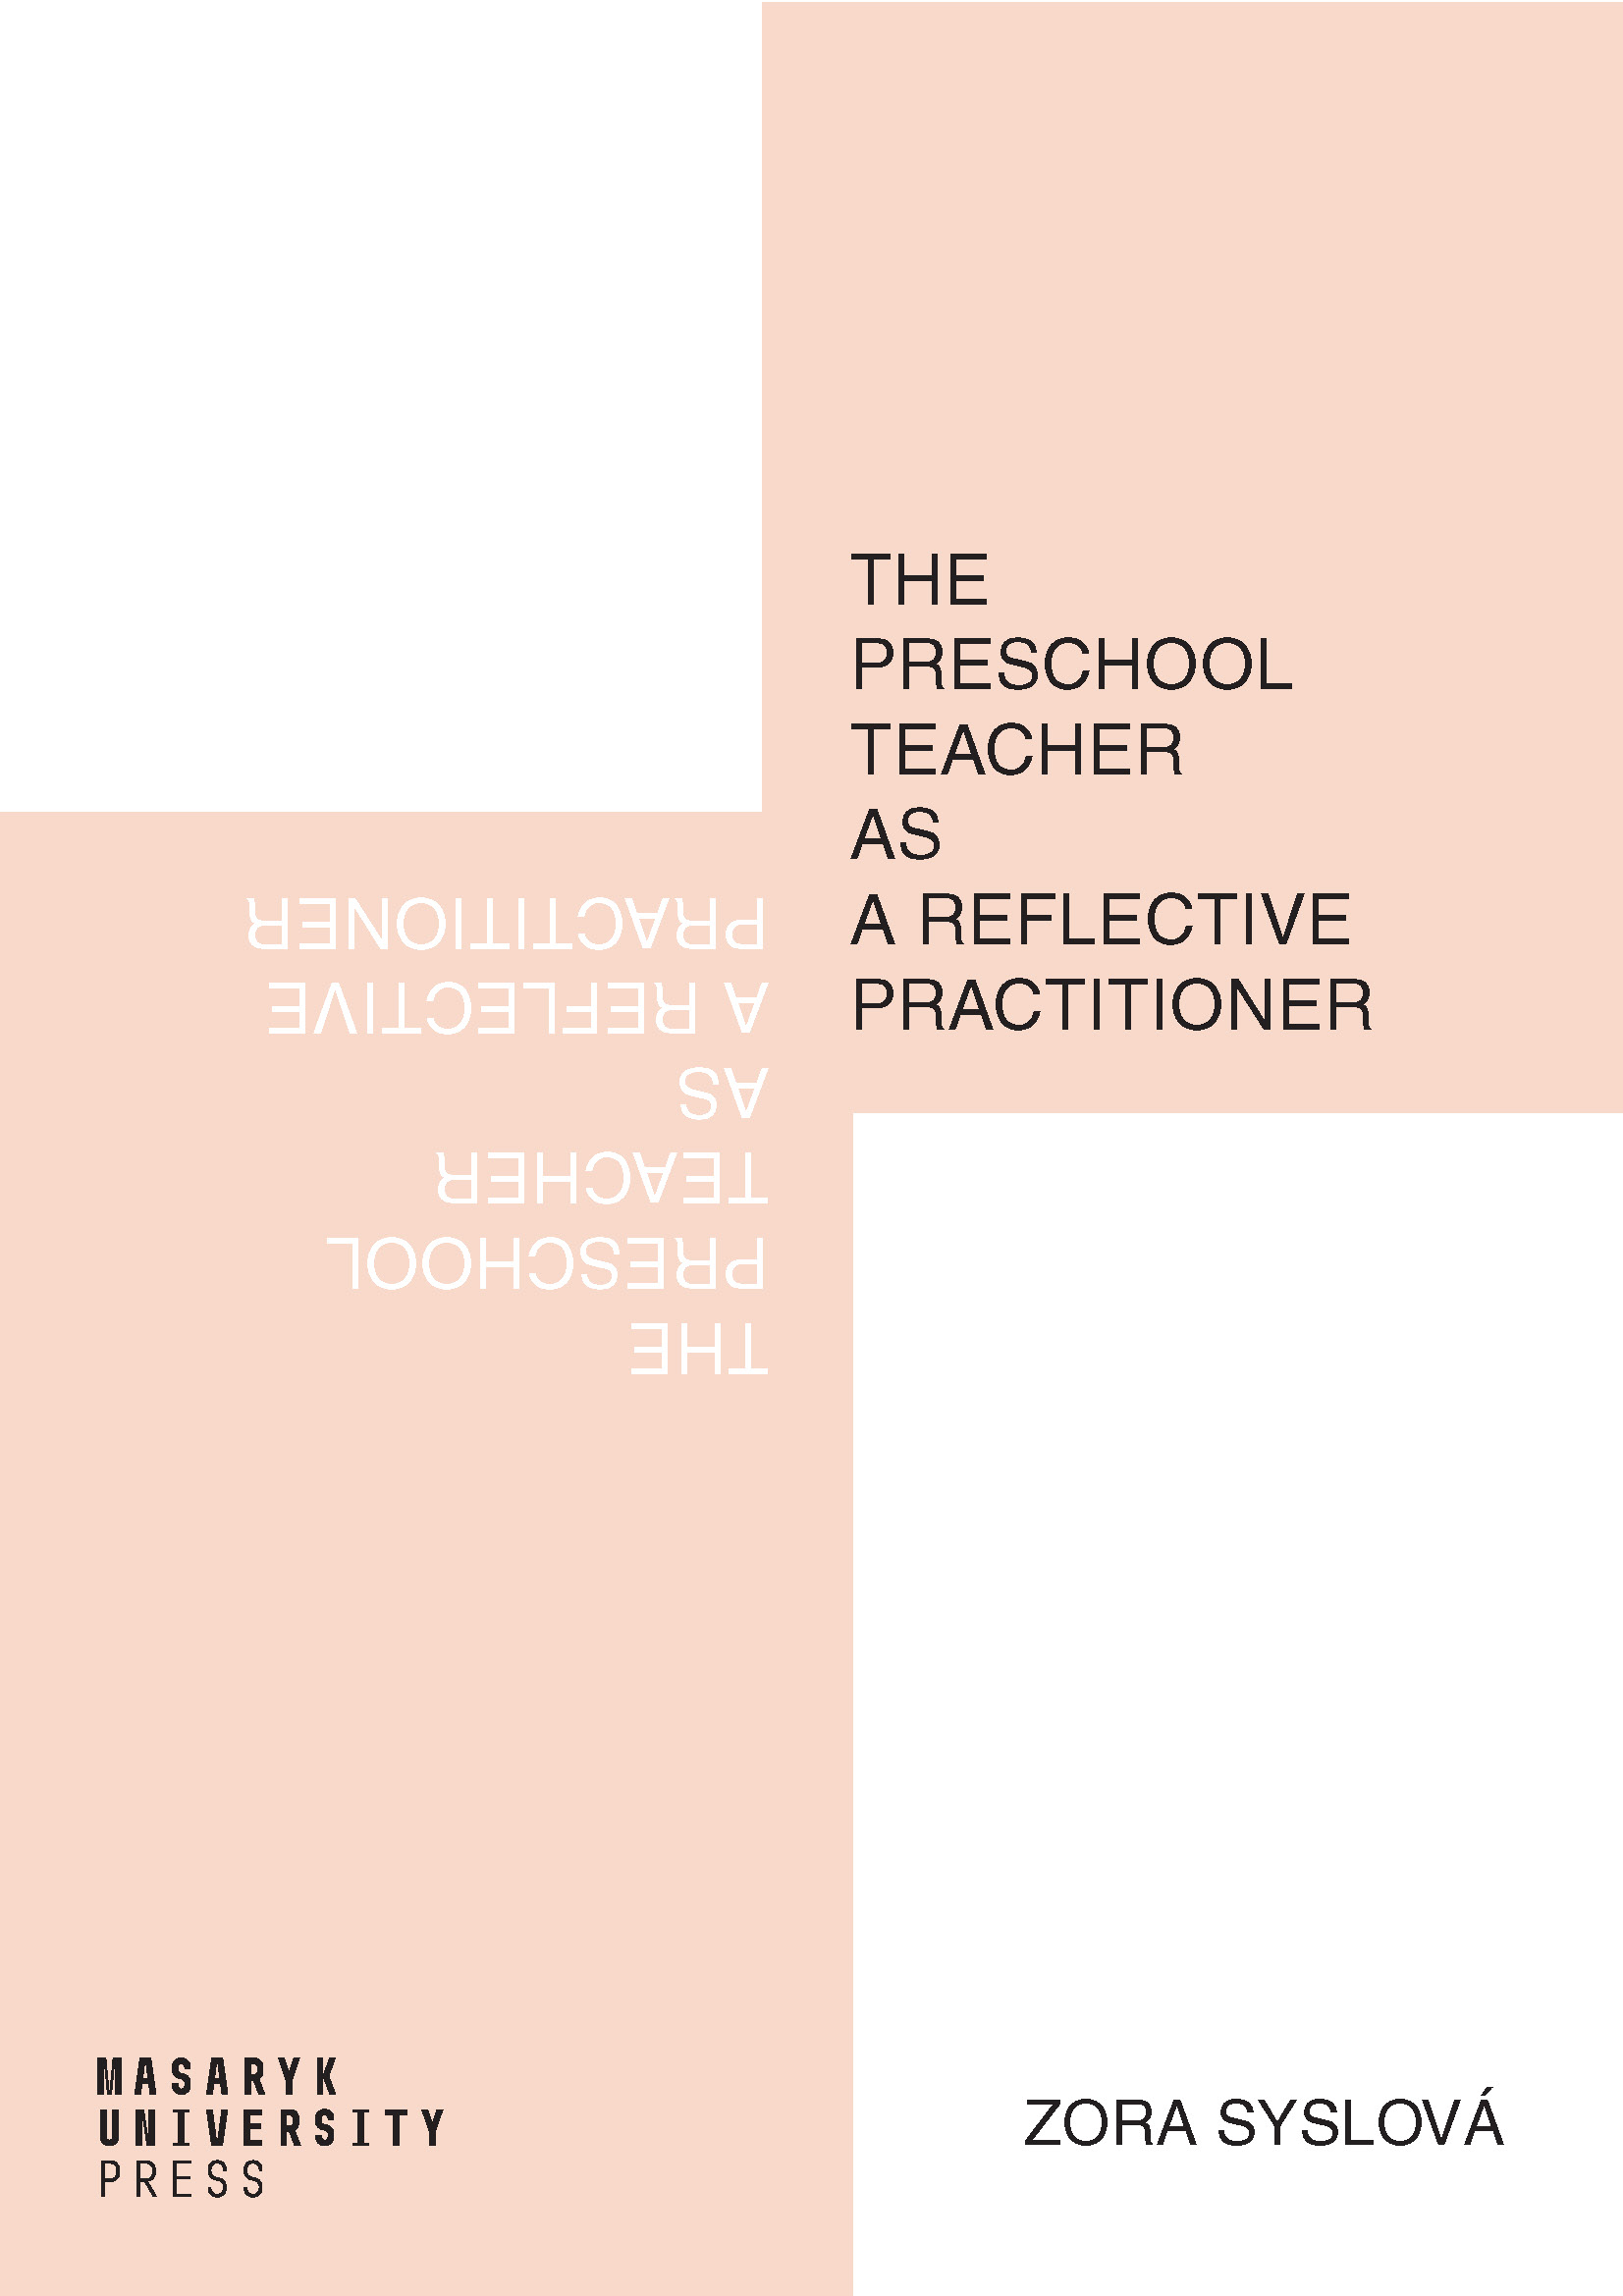 Obálka pro The preschool teacher as a reflective practitioner